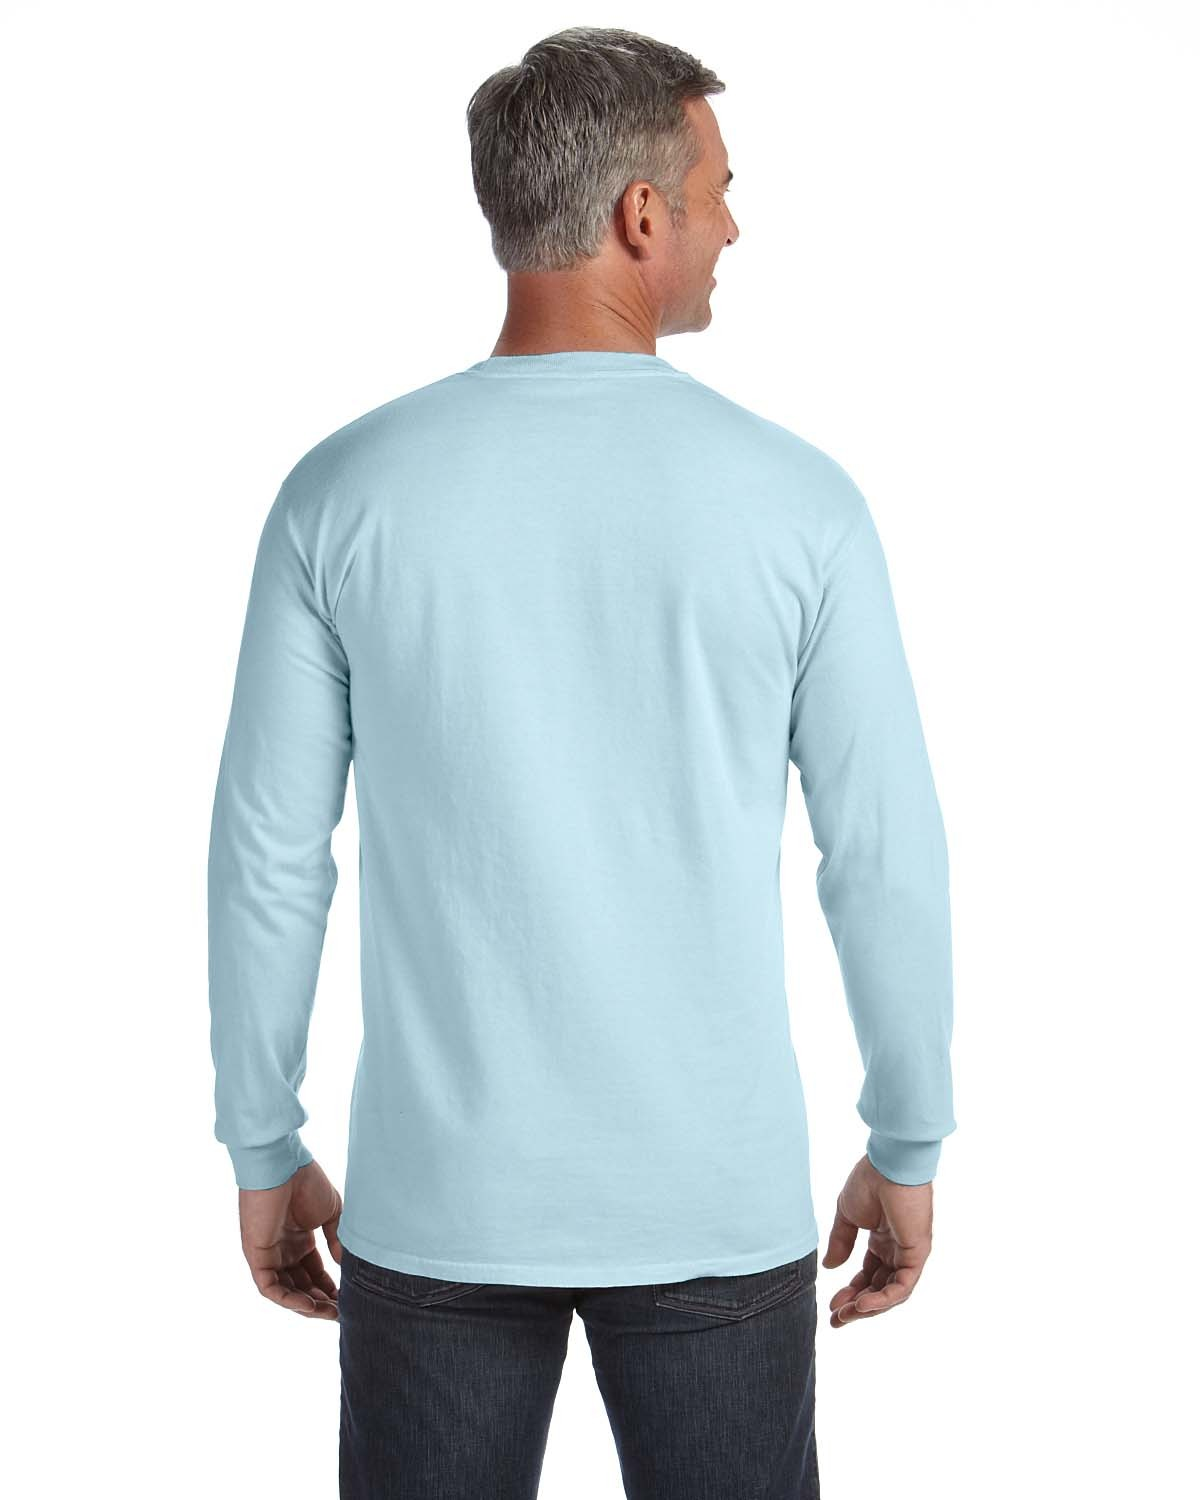 C4410 Comfort Colors CHAMBRAY